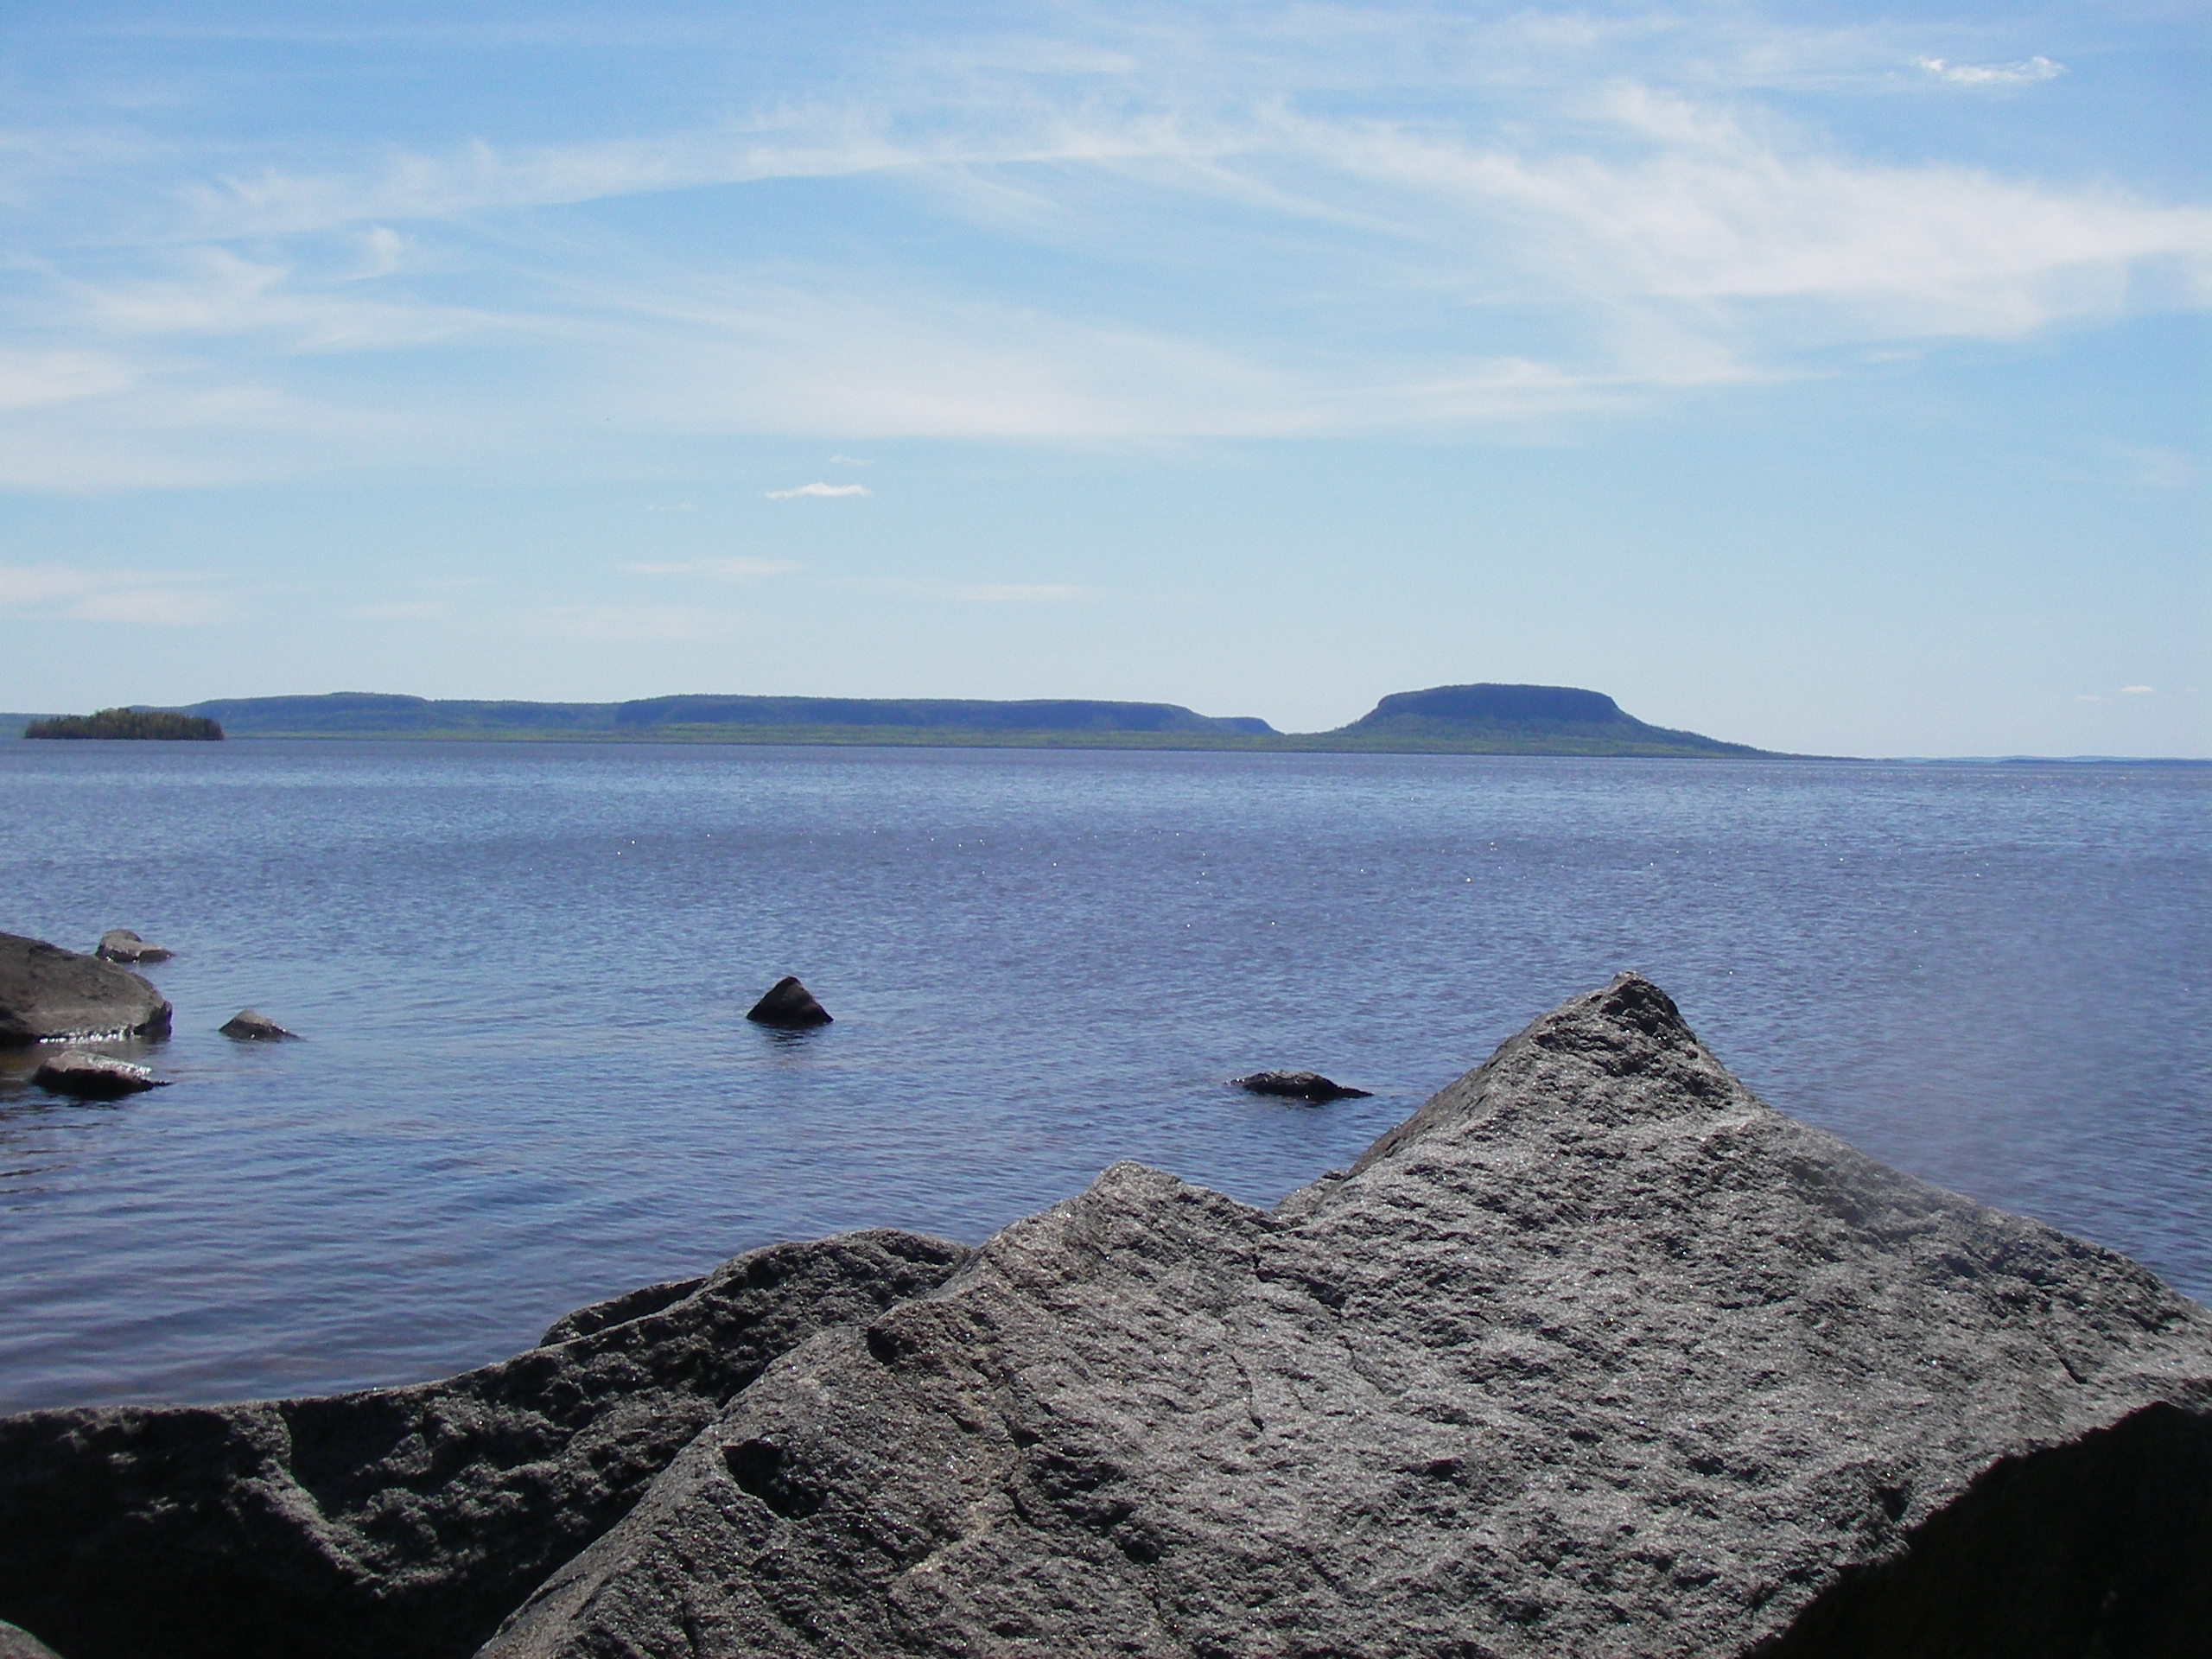 Pie Island seen from Squaw Bay